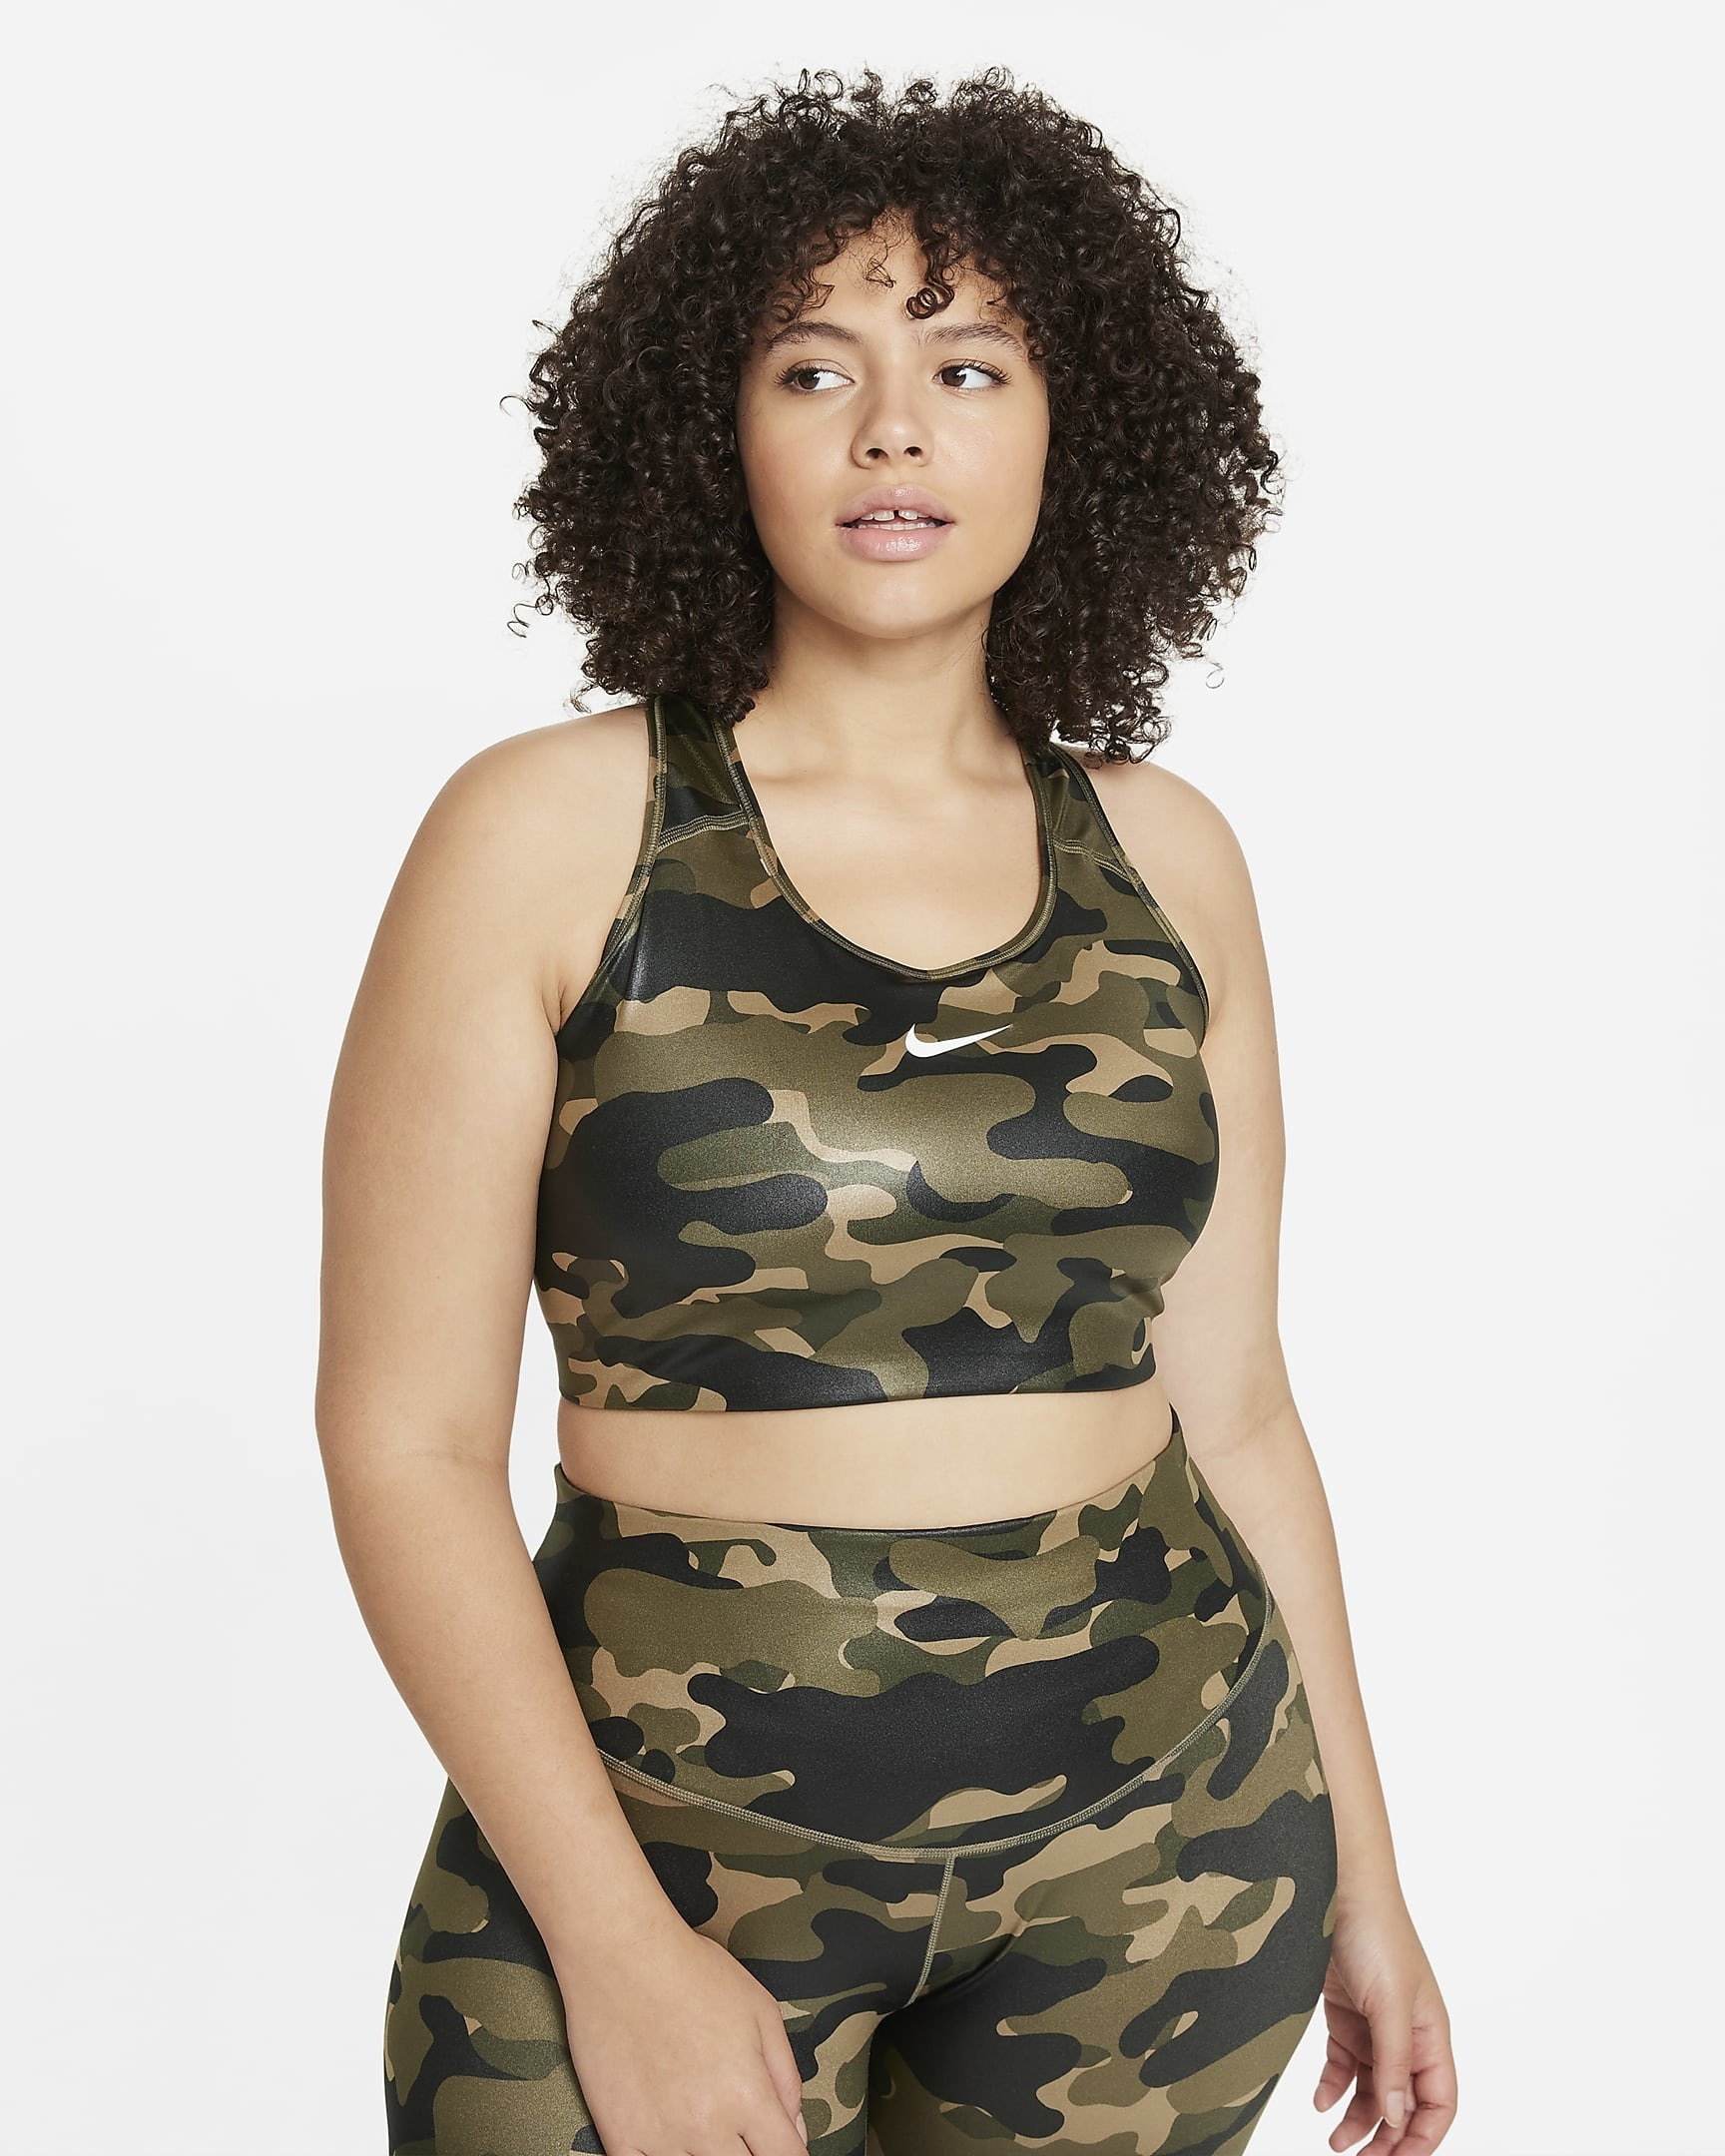 Model wearing green camouflage sports bra with matching leggings